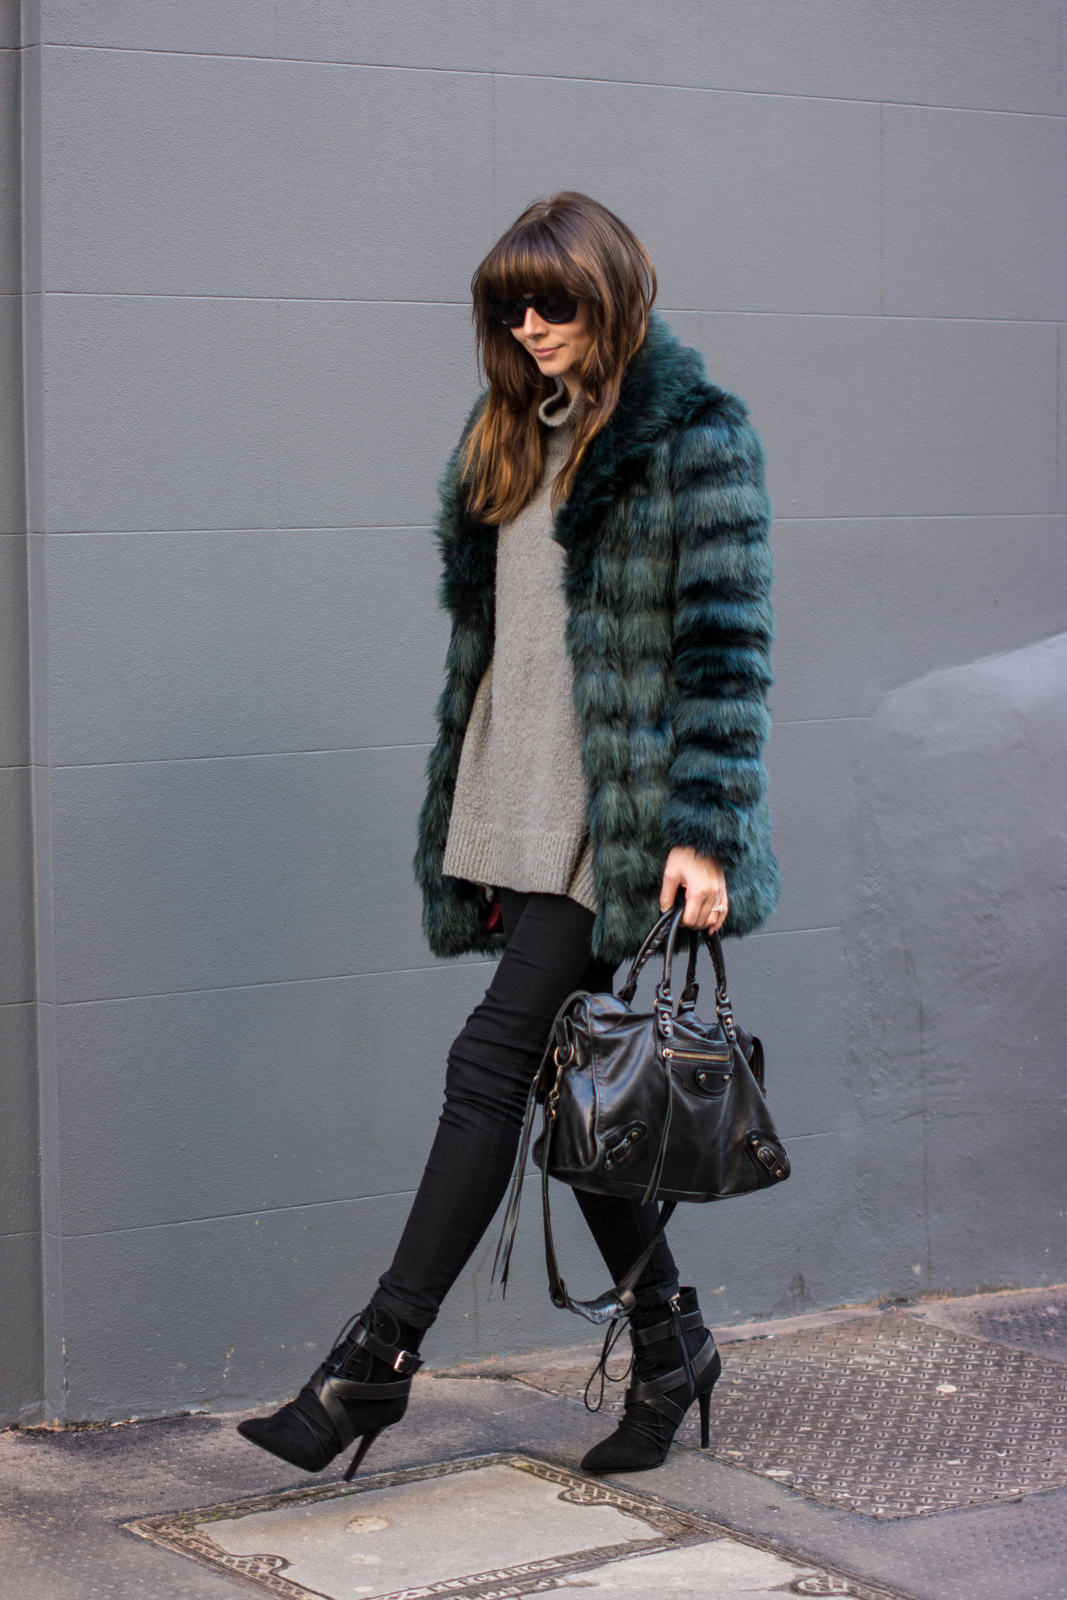 EJSTYLE - Fashion Union teal green faux fur coat, balenciaga classic city bag, Black skinny jeans, Zara lace up ankle boots SS15, winter outfit, influential fashion bloggers, london street style